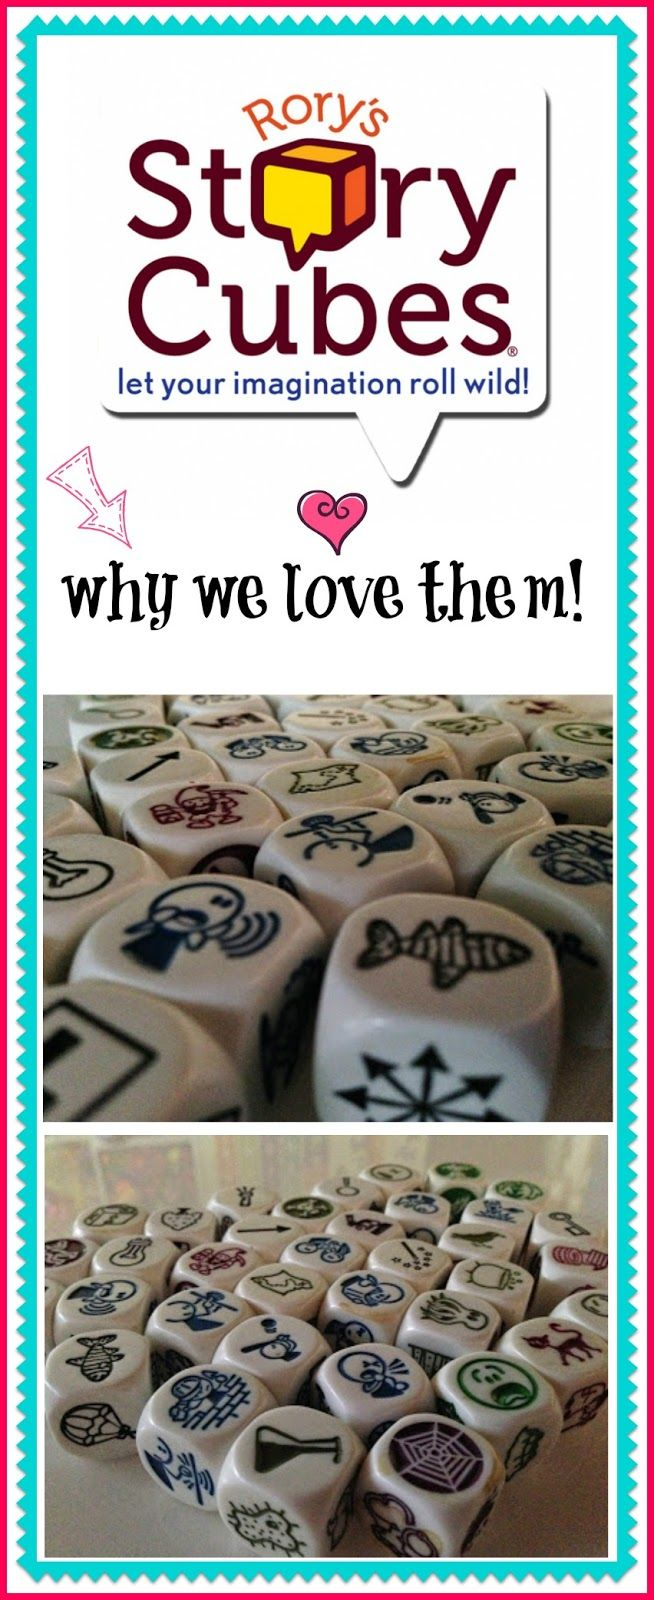 Rory Story Cubes and why we love them | Epic Childhood